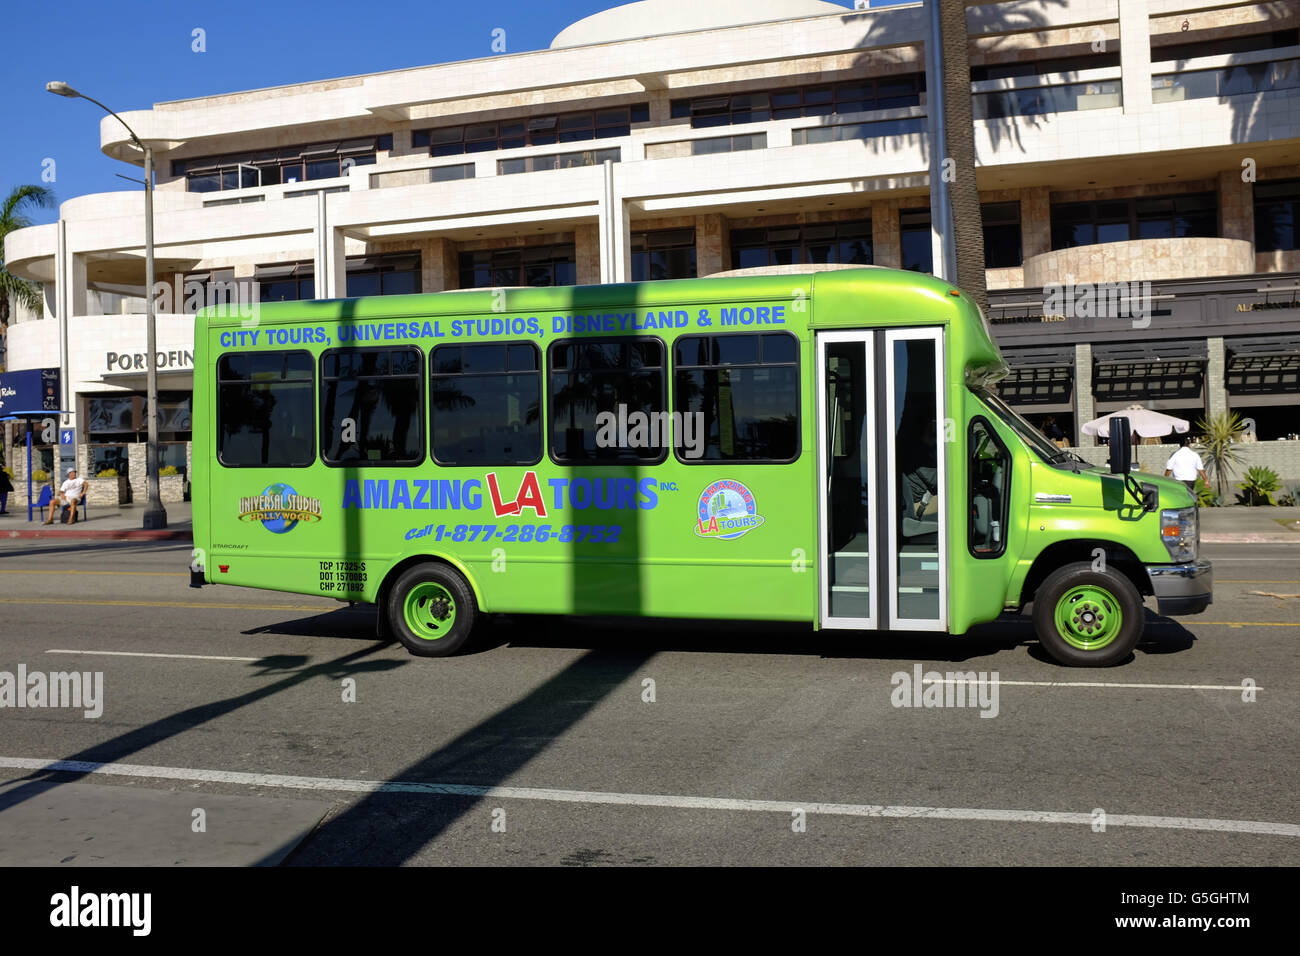 Amazing LA Tours, Tour Bus, Los Angeles. - Stock Image